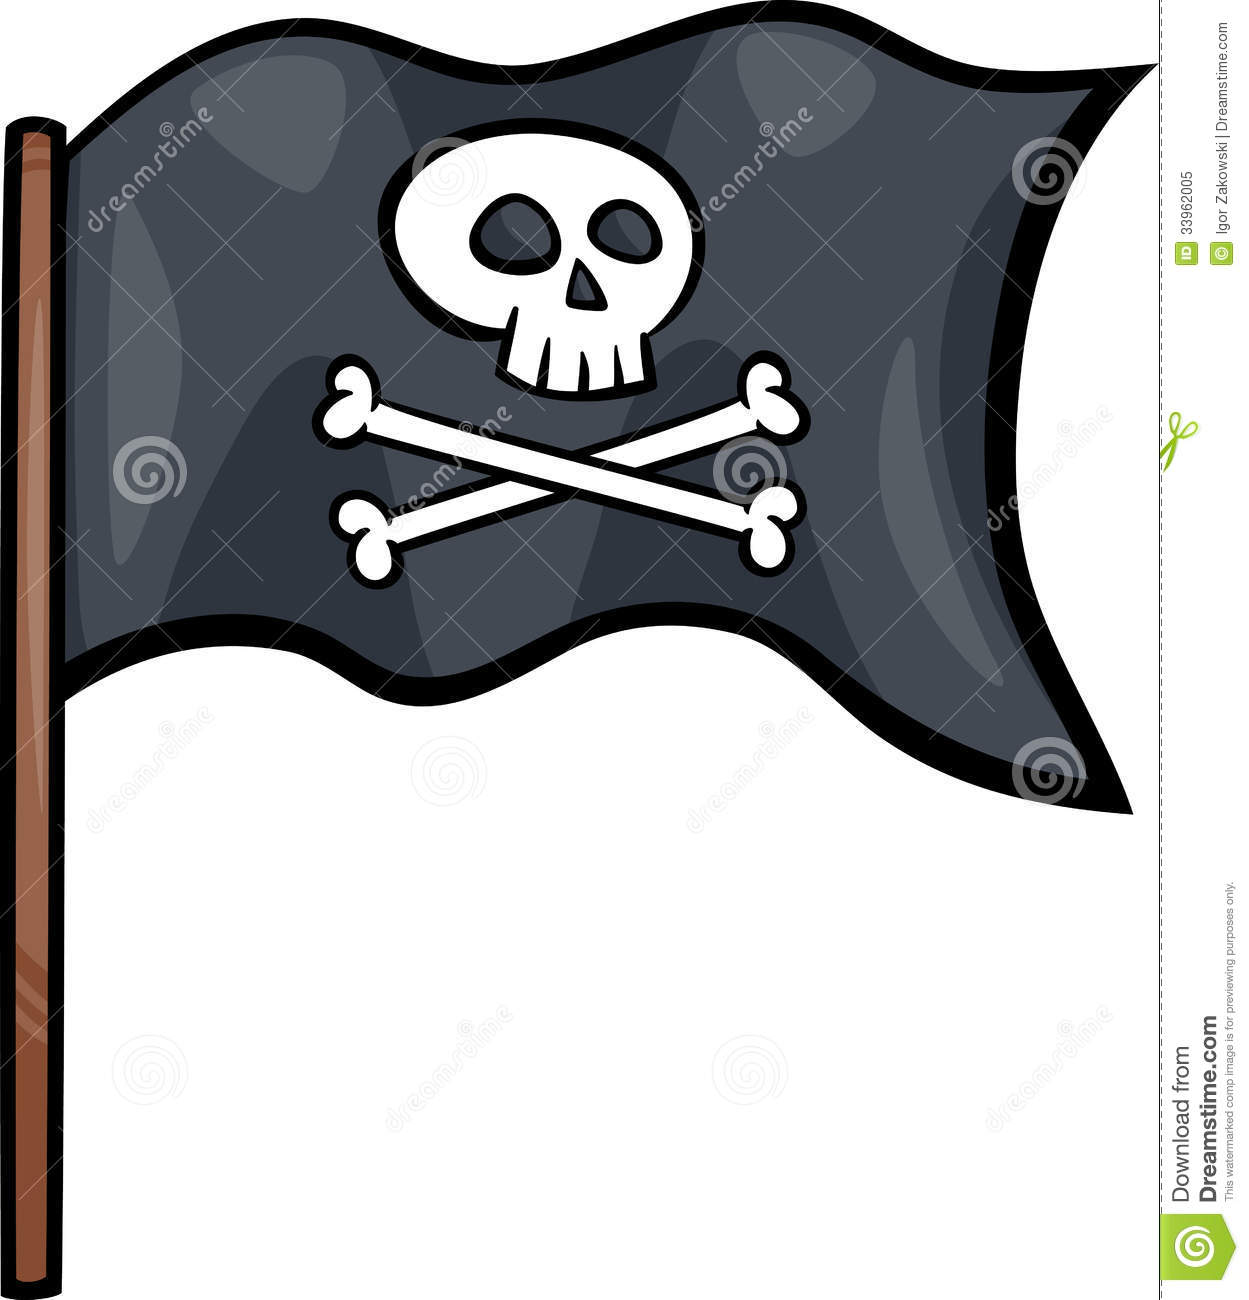 pirate flag cartoon clip art stock vector illustration of rh dreamstime com pirate flag clipart black and white Pirate Flag Outline